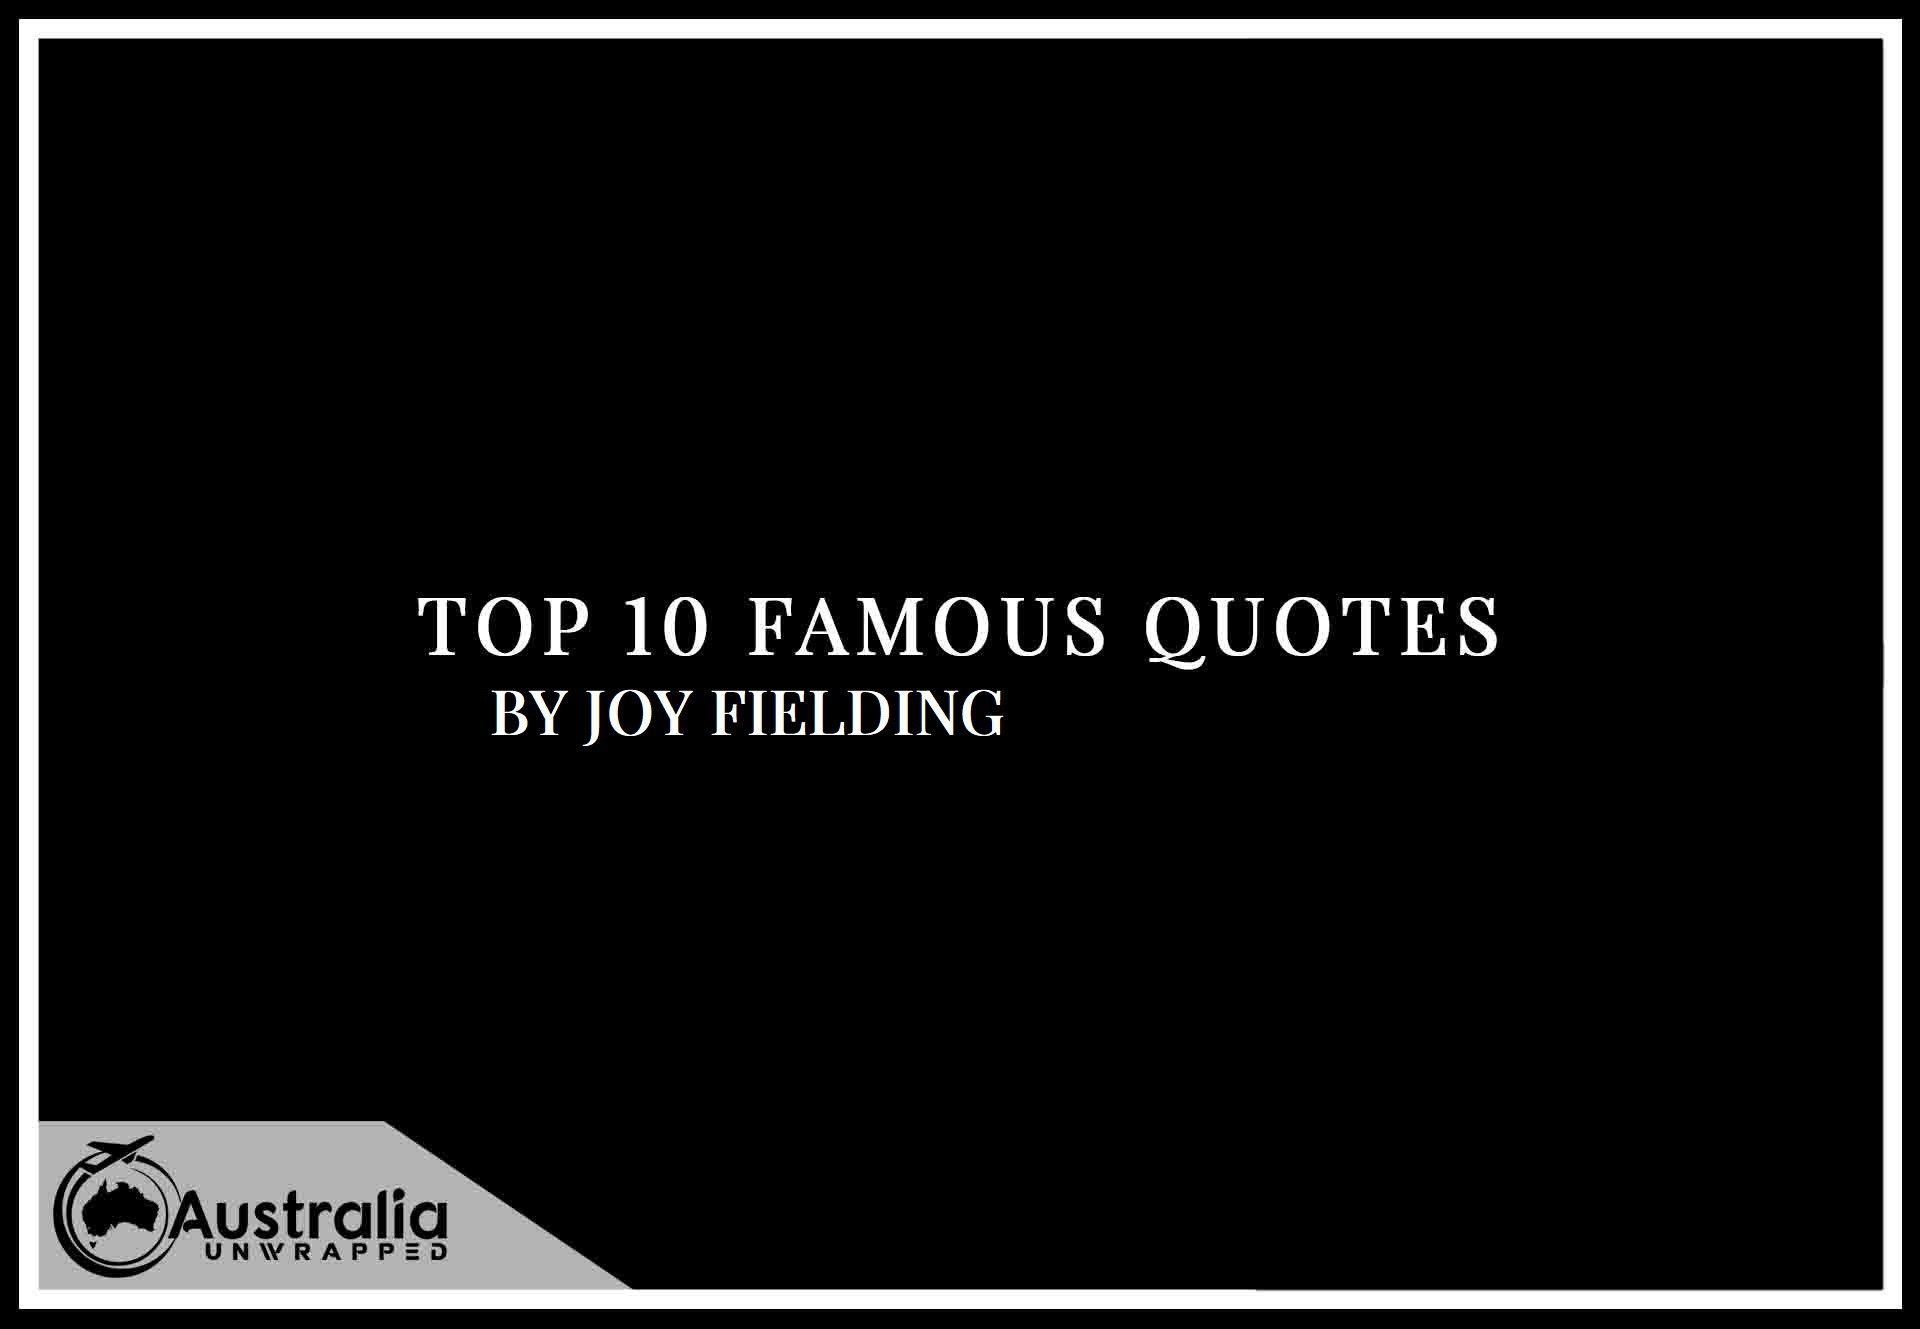 Top 10 Famous Quotes by Author Joy Fielding